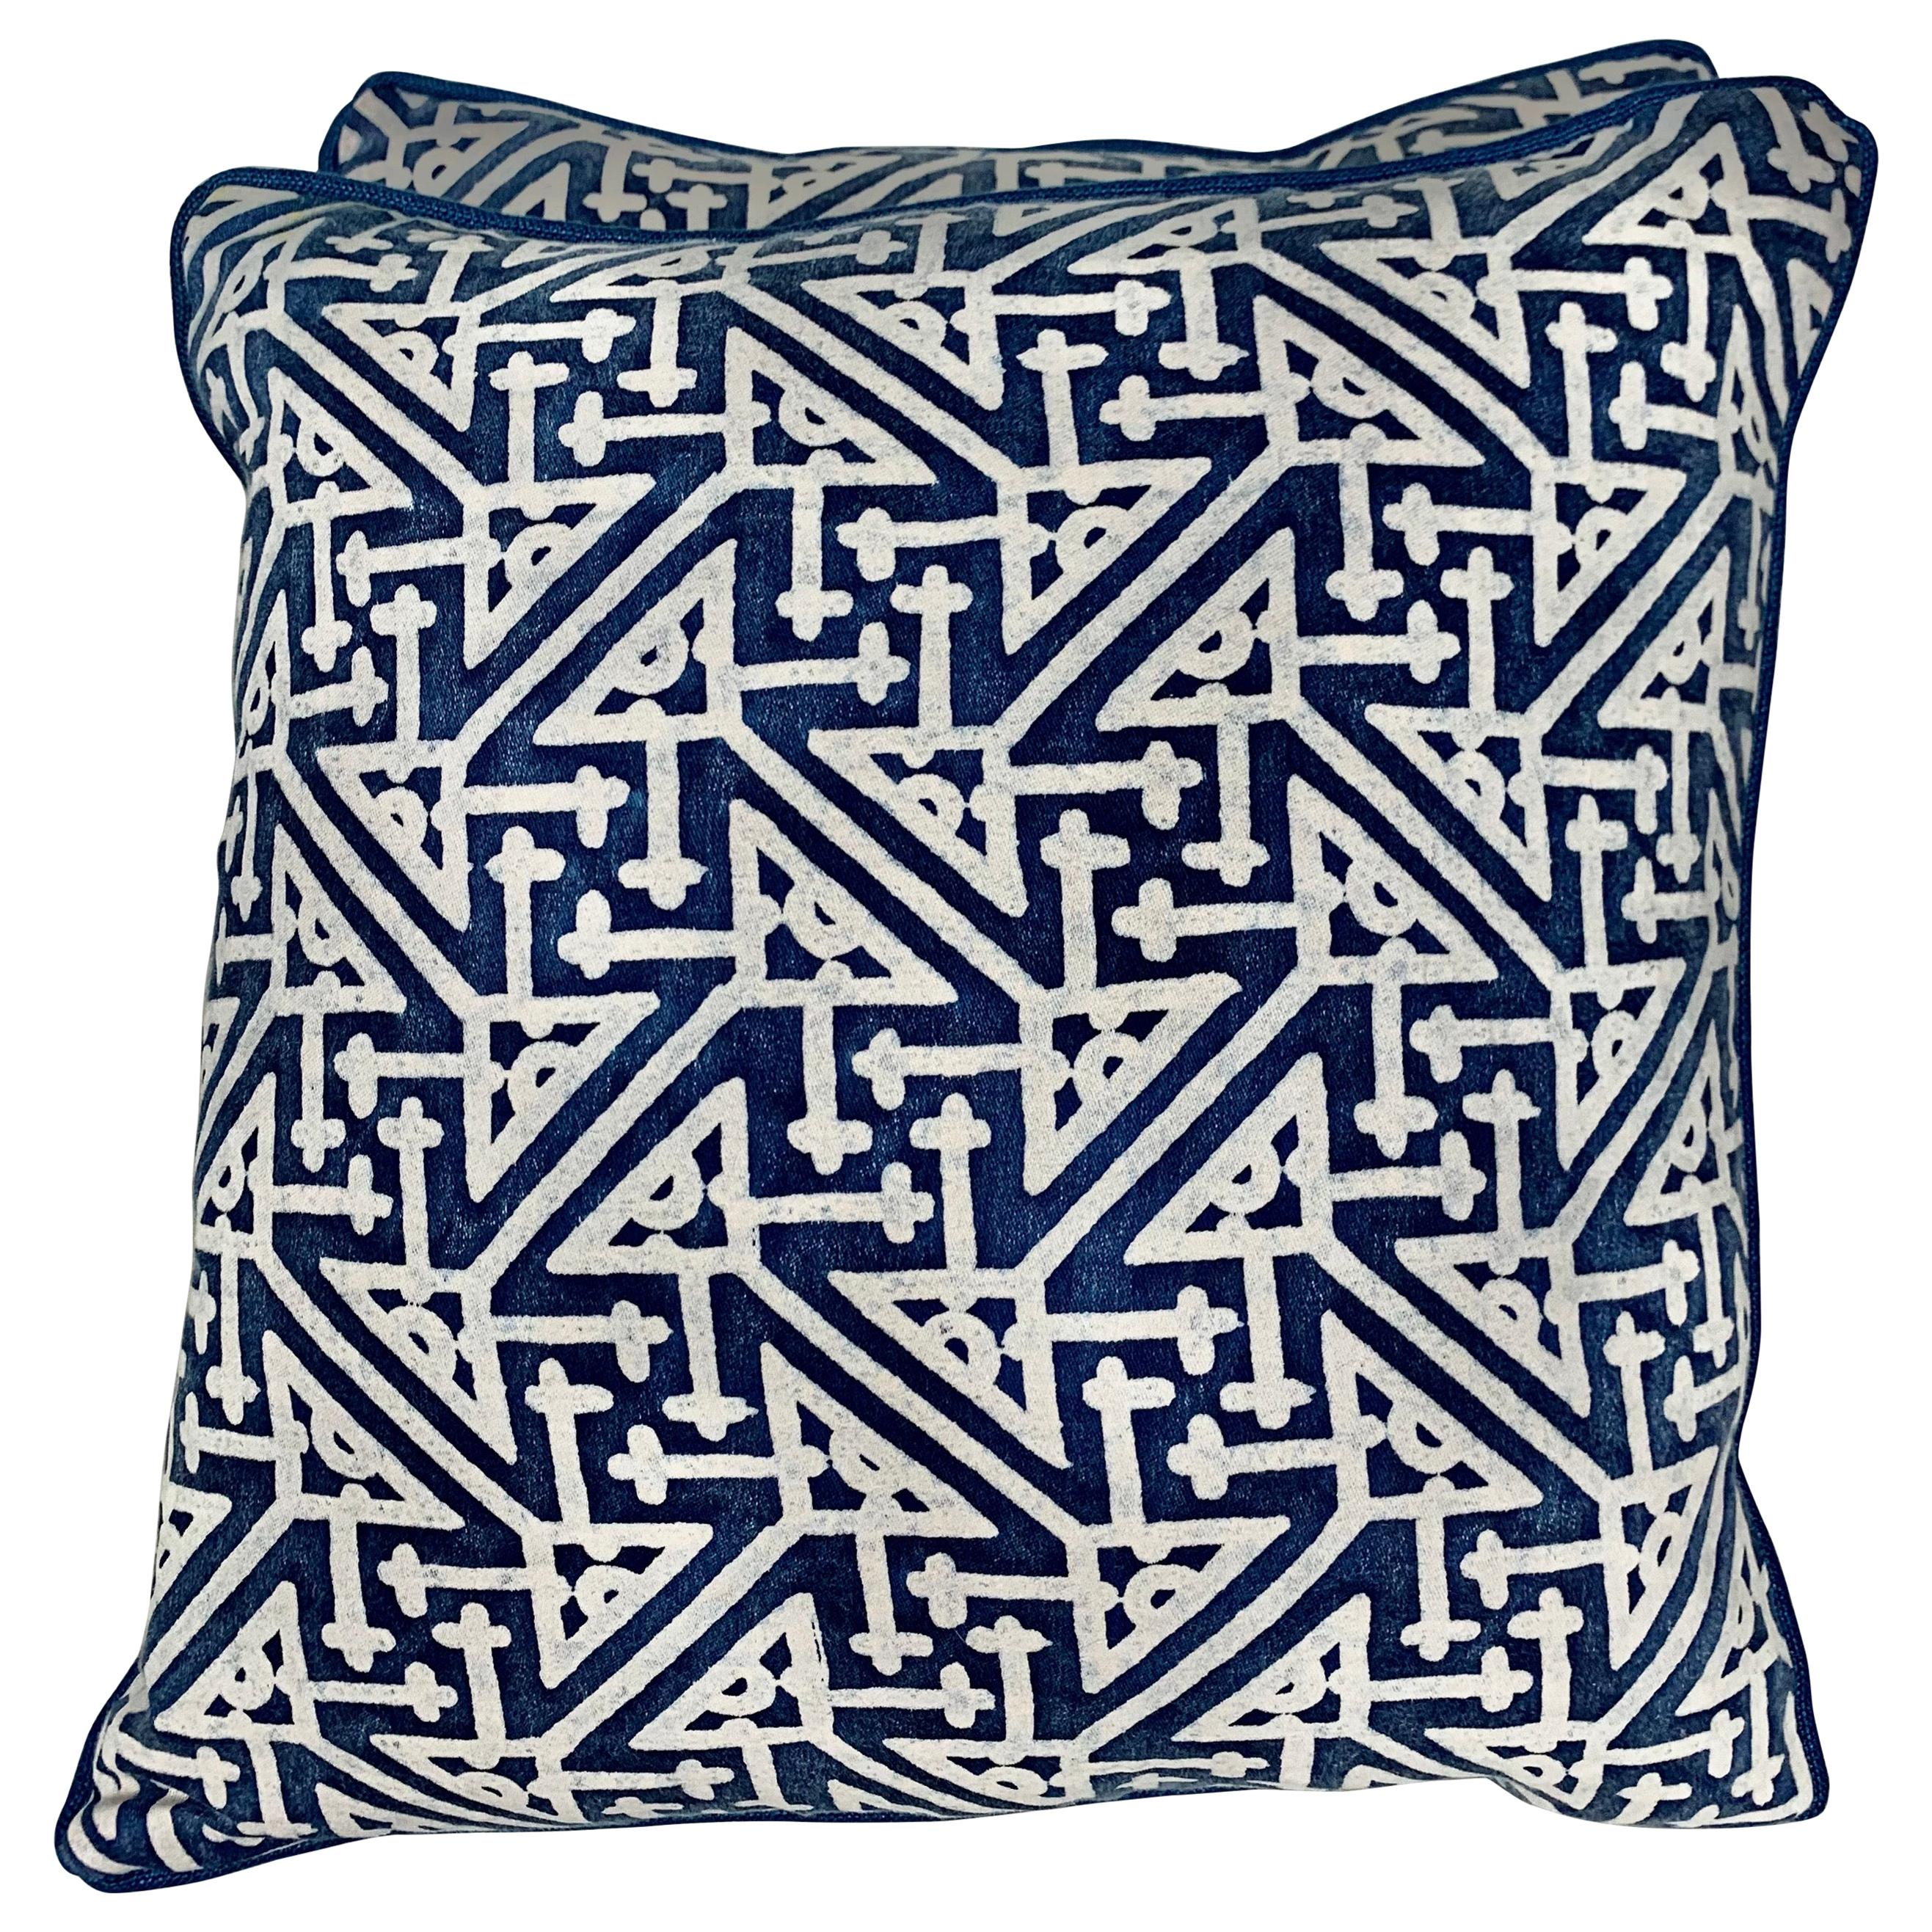 Pair of Vintage Blue and White Fortuny Pillows